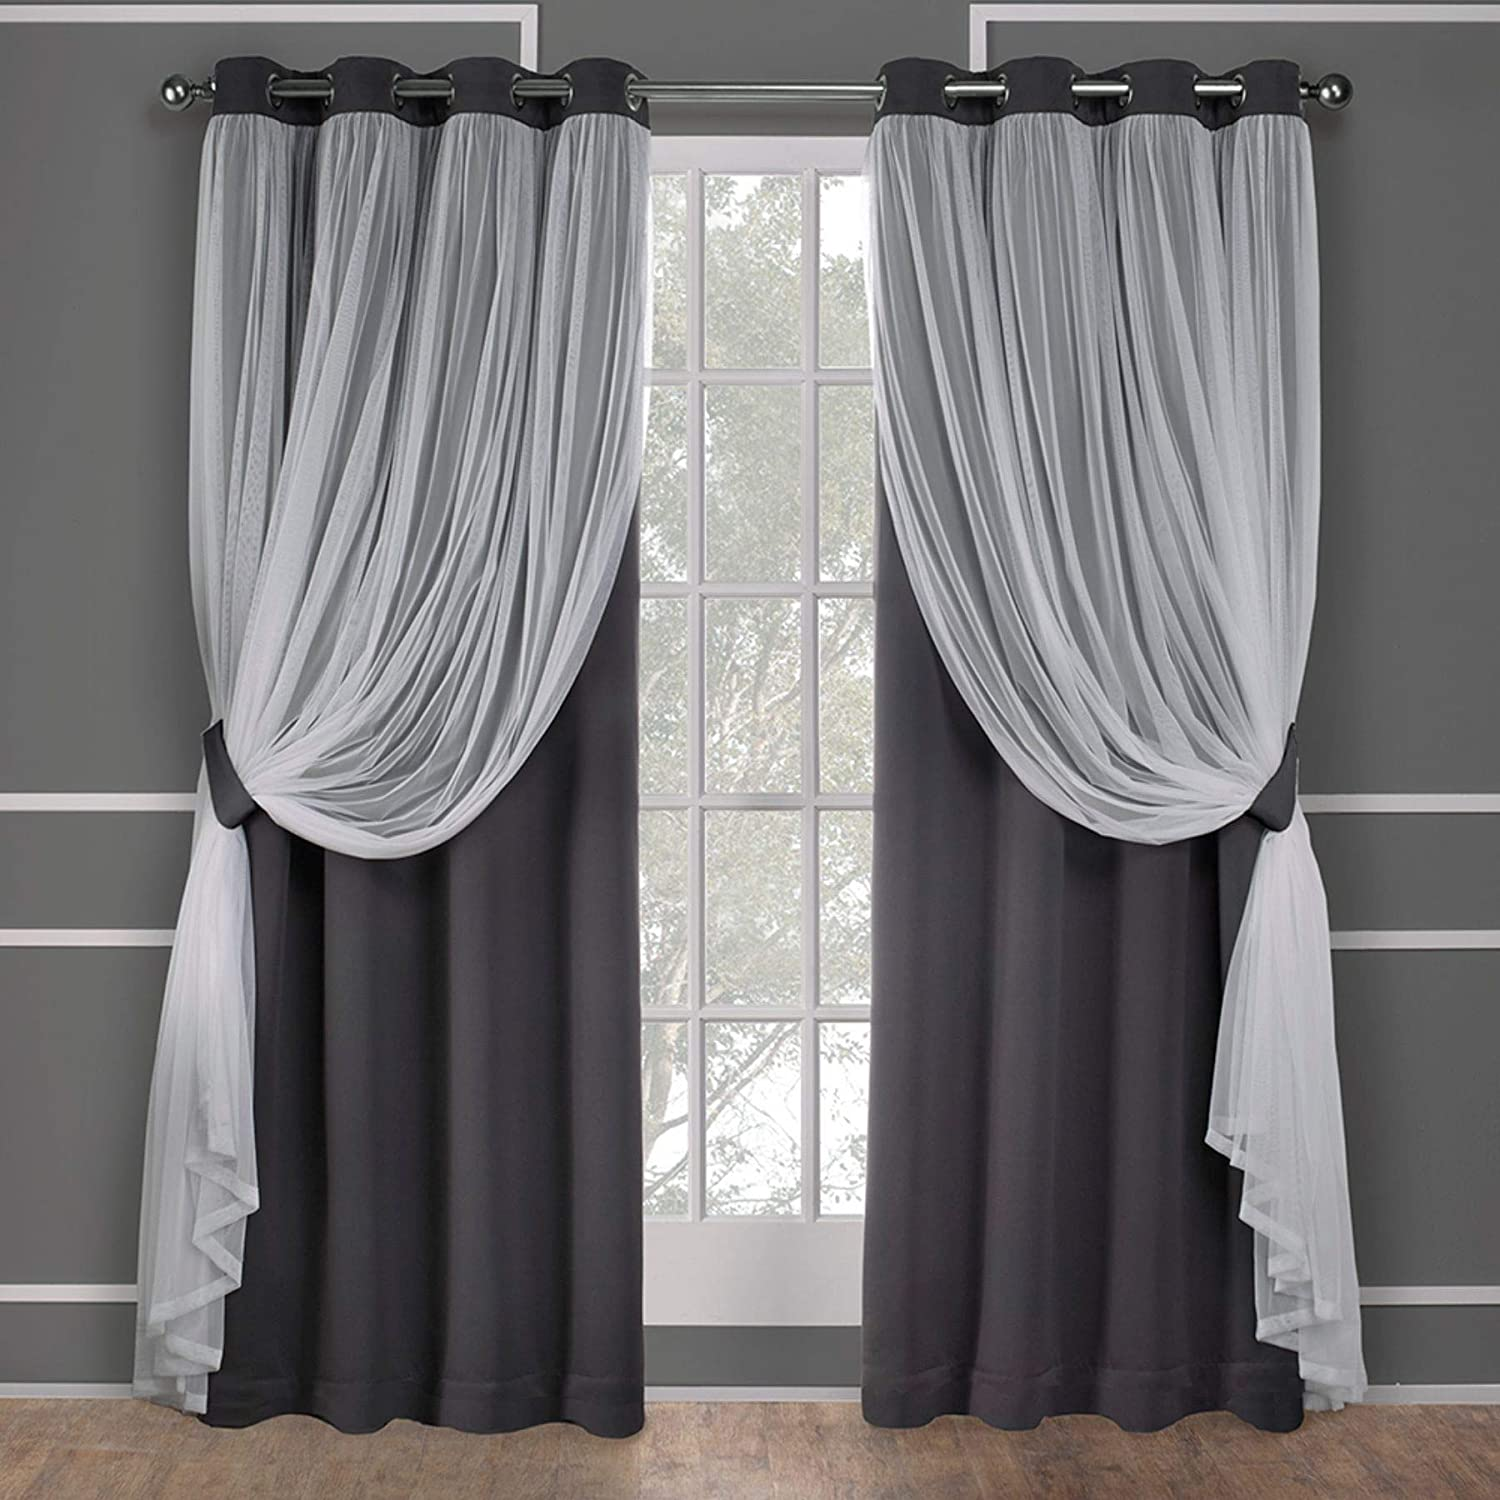 Exclusive Home Curtains Catarina Layered Solid Blackout and Sheer Window Curtain Panel Pair with Grommet Top, 52x96, Black Pearl, 2 Count